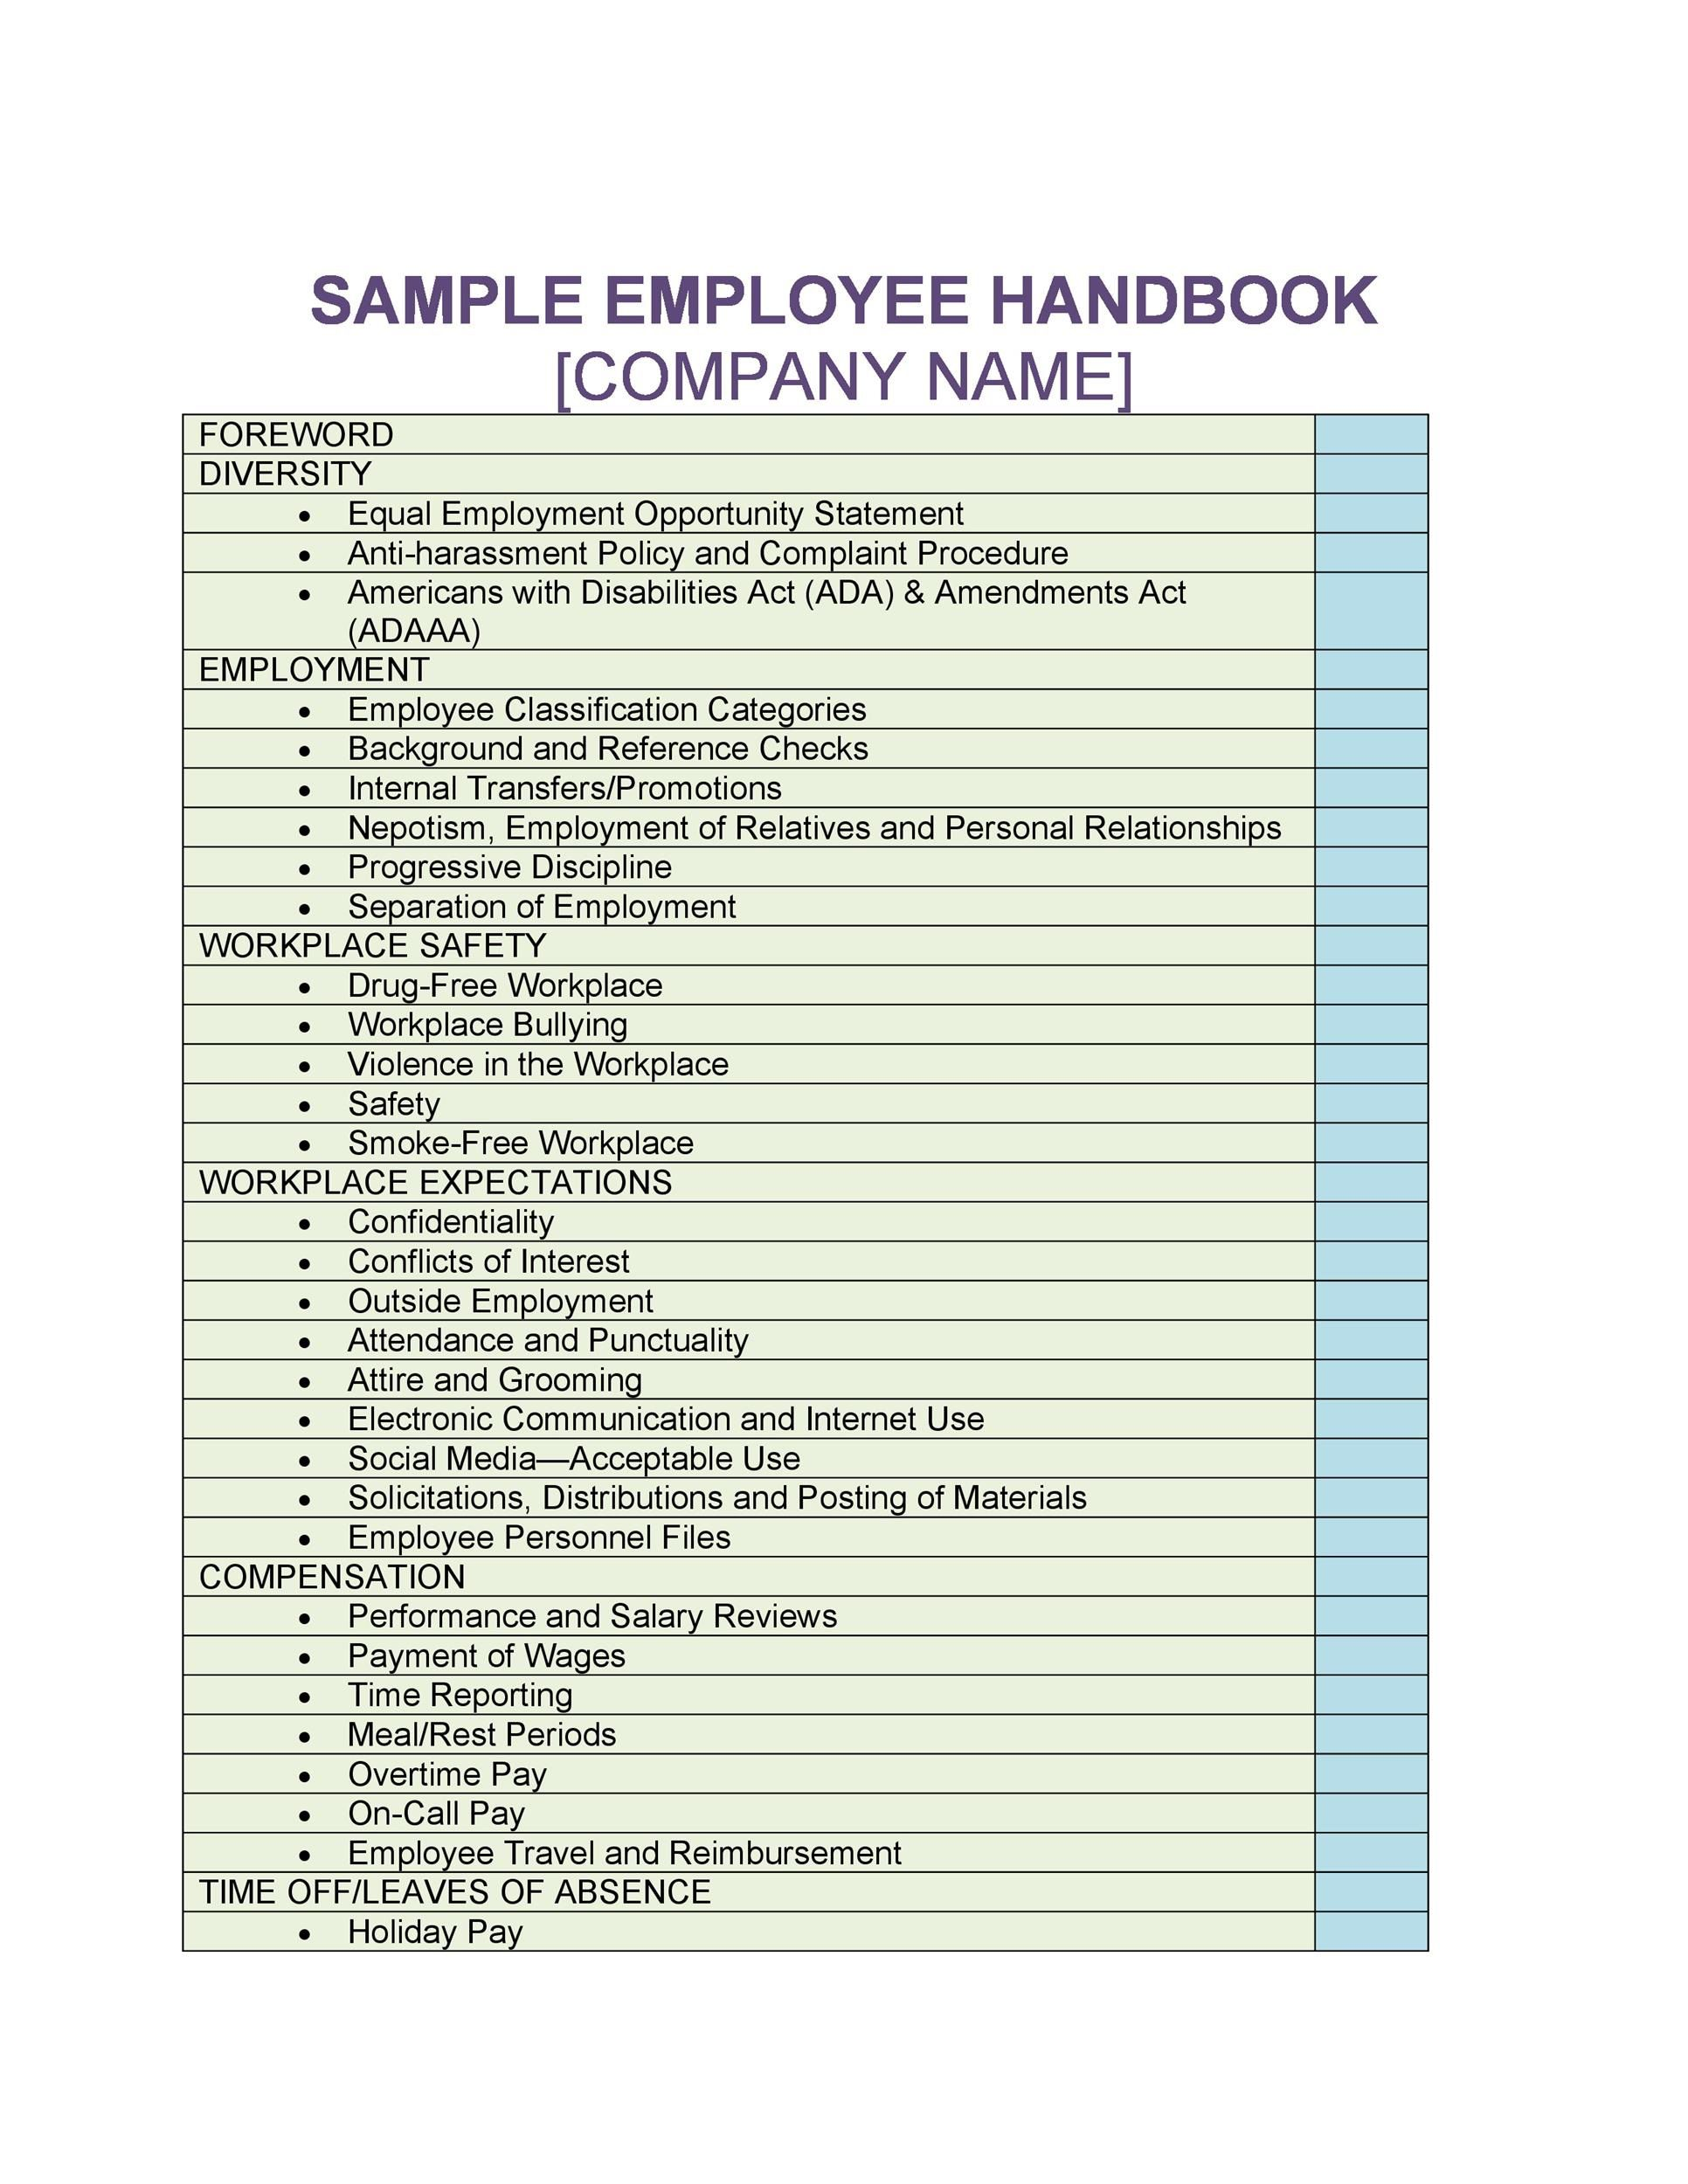 005 Staggering Employee Handbook Template Free Concept  Restaurant Download Induction Manual Sample In SingaporeFull